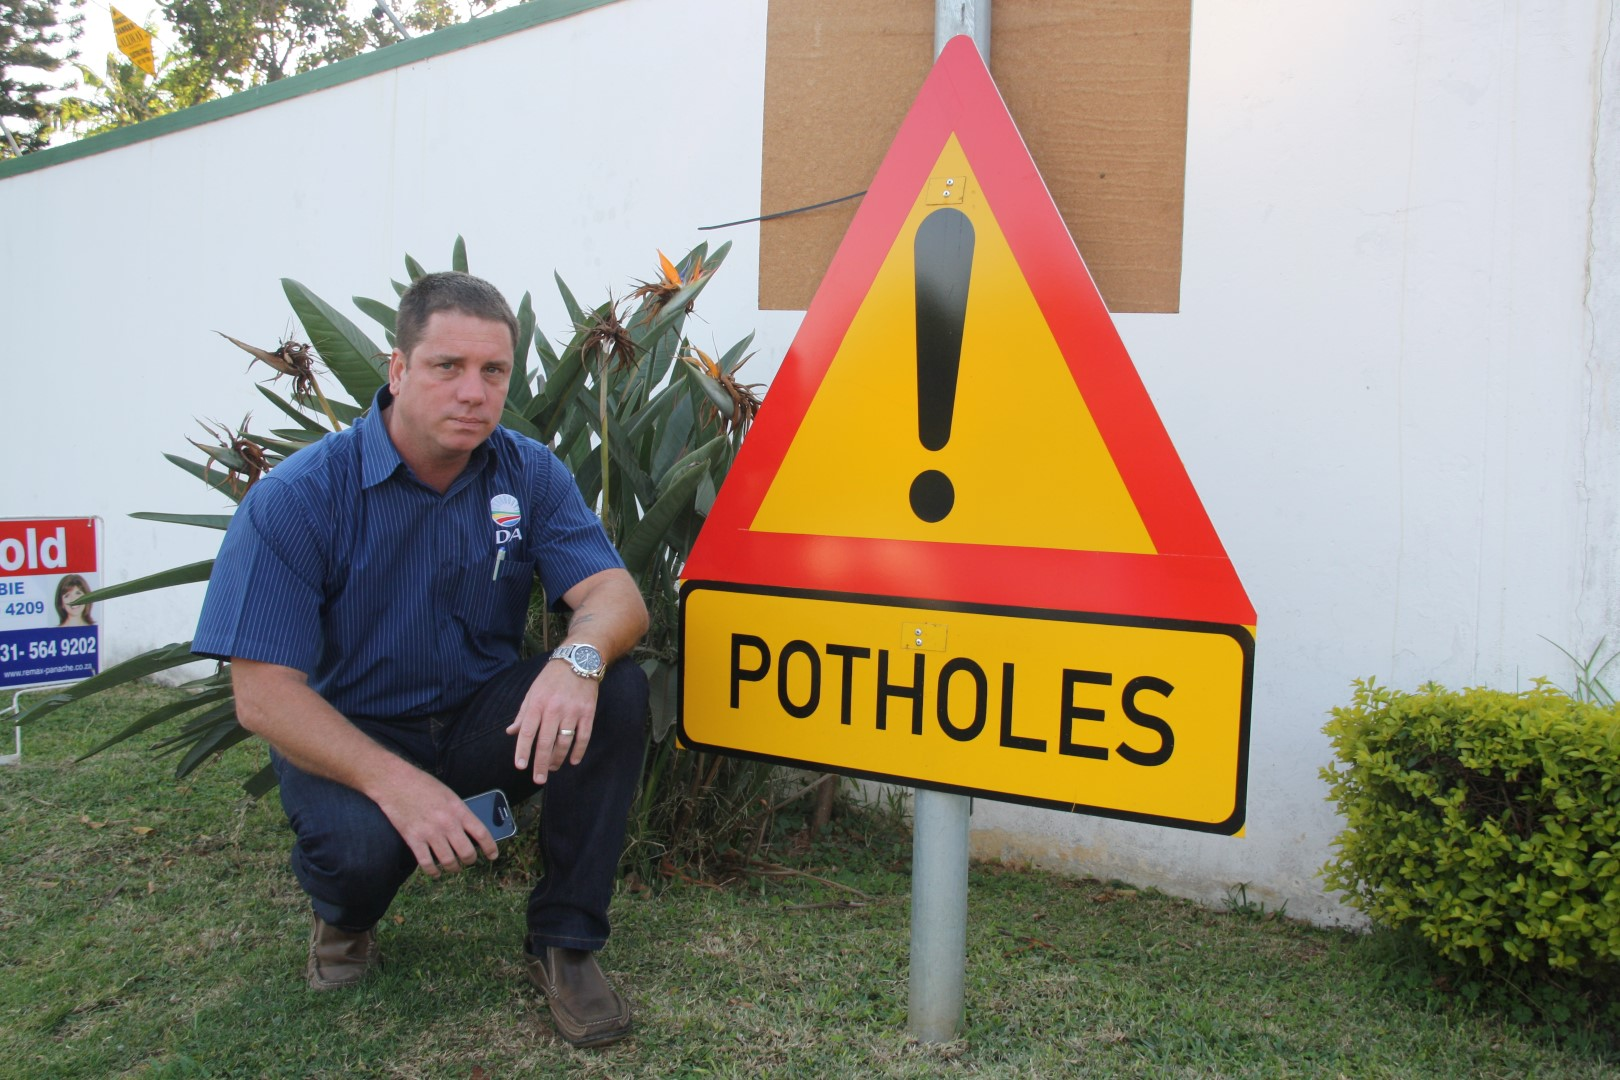 uMhlanga ward councillor, Heinz de Boer, says the city's Road and Stormwater department is struggling with a backlog of repair work which includes several potholes on Sugarfarm Trail in Sunningdale.